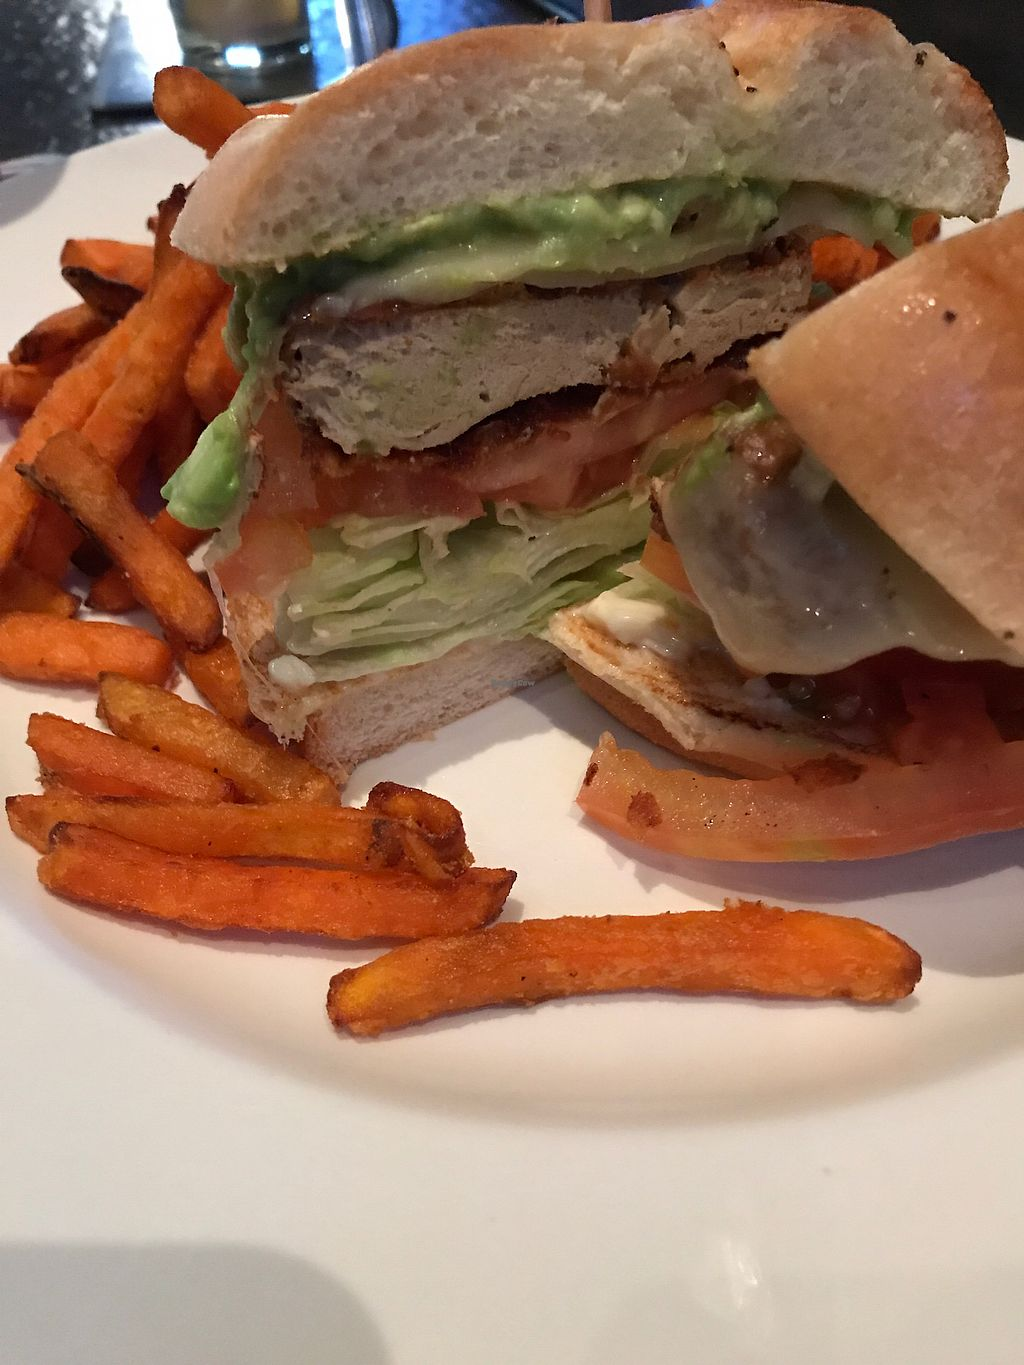 """Photo of Yard House  by <a href=""""/members/profile/sjberrest"""">sjberrest</a> <br/>Crispy Chik'n and Avocado Burger  <br/> December 28, 2017  - <a href='/contact/abuse/image/93566/339834'>Report</a>"""